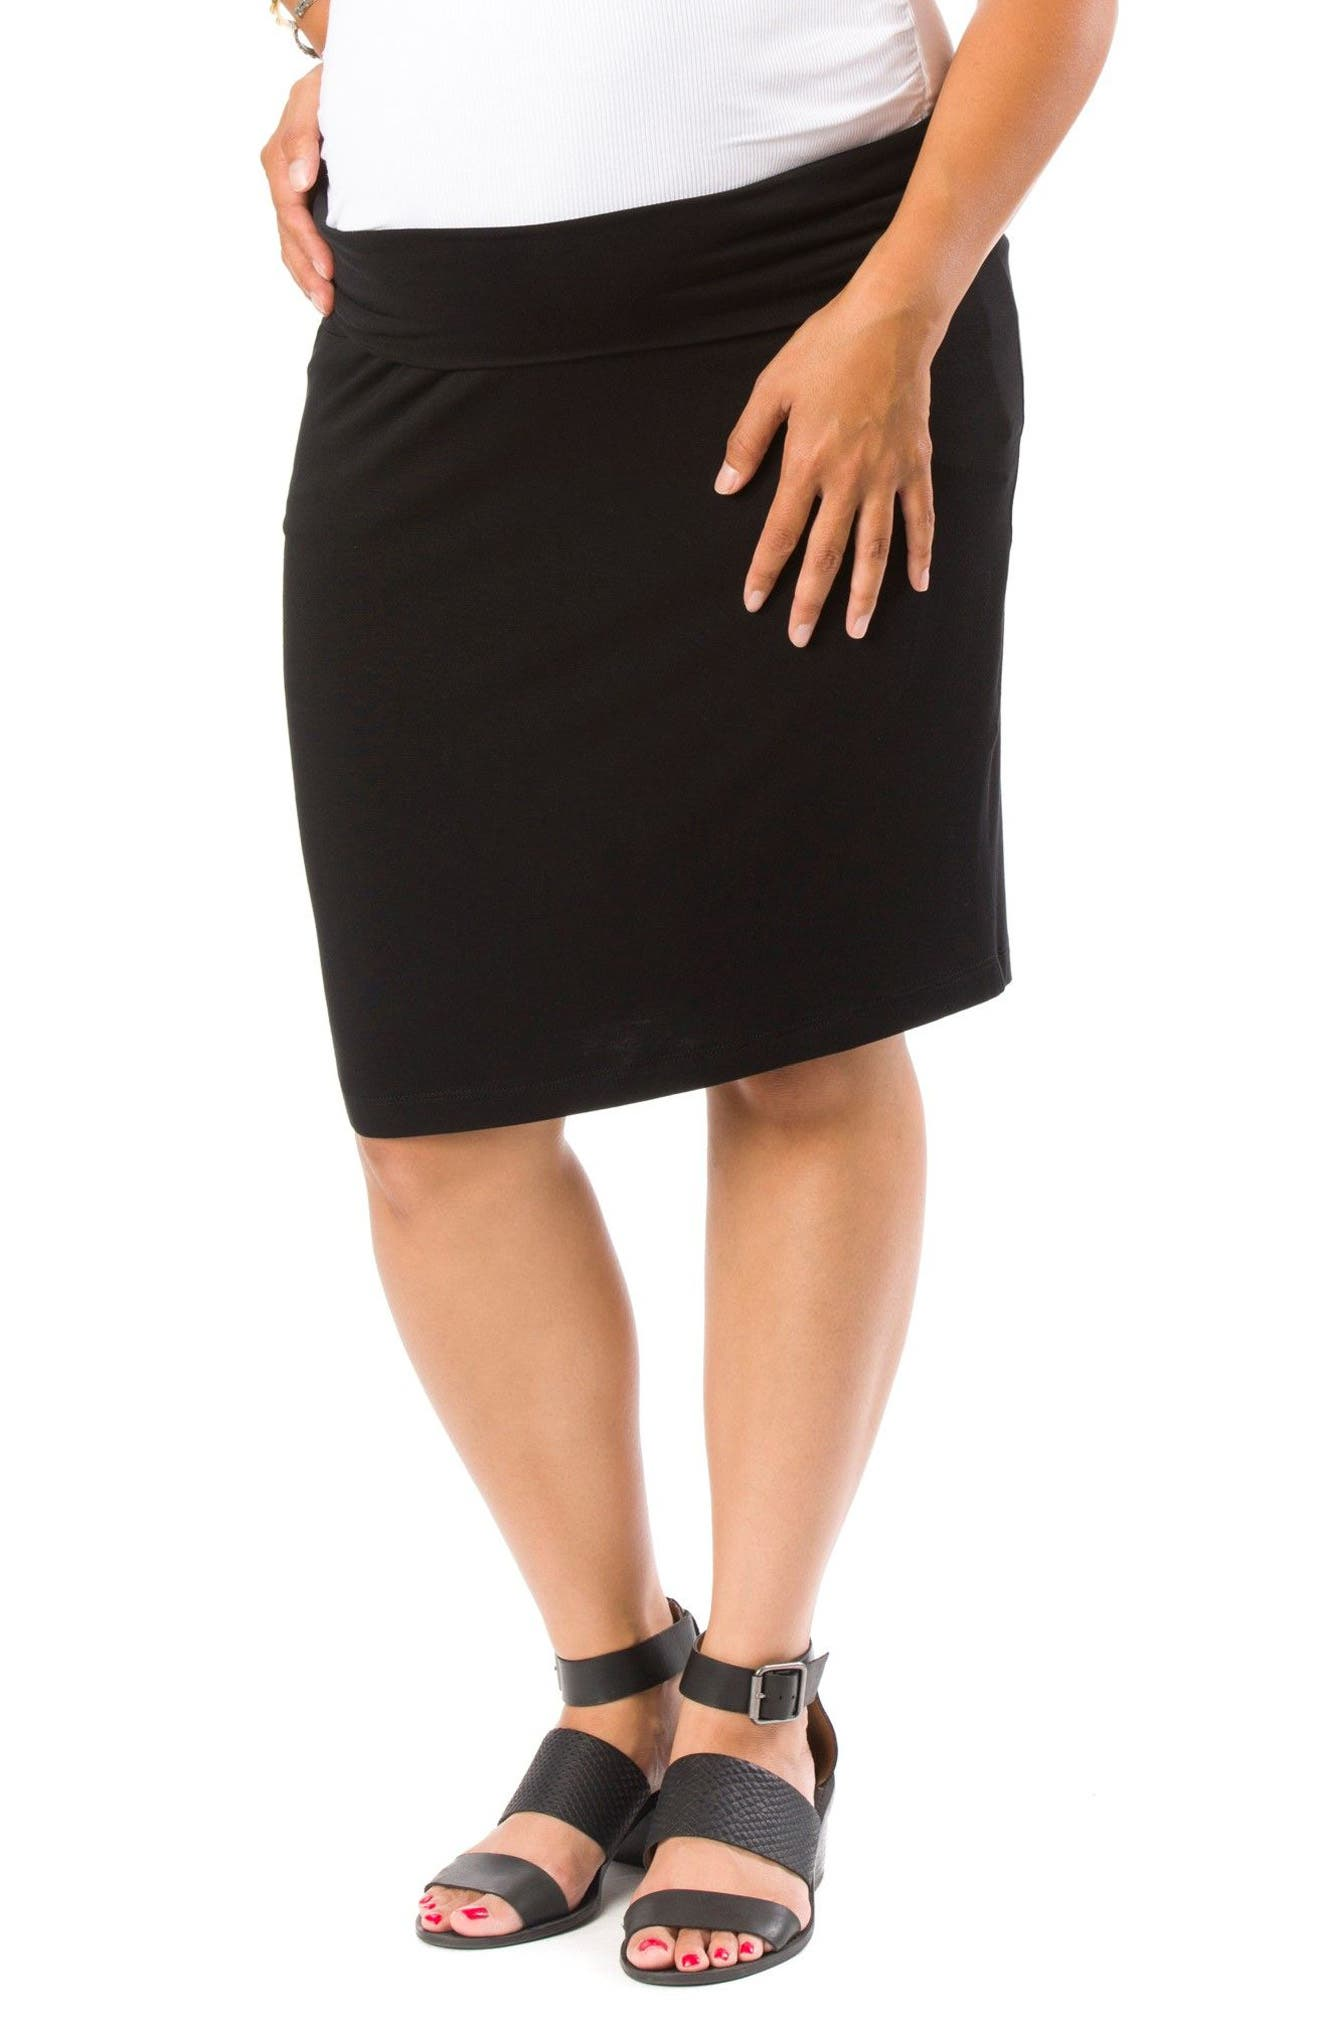 Alternate Image 1 Selected - LAB40 Cleo Maternity Pencil Skirt